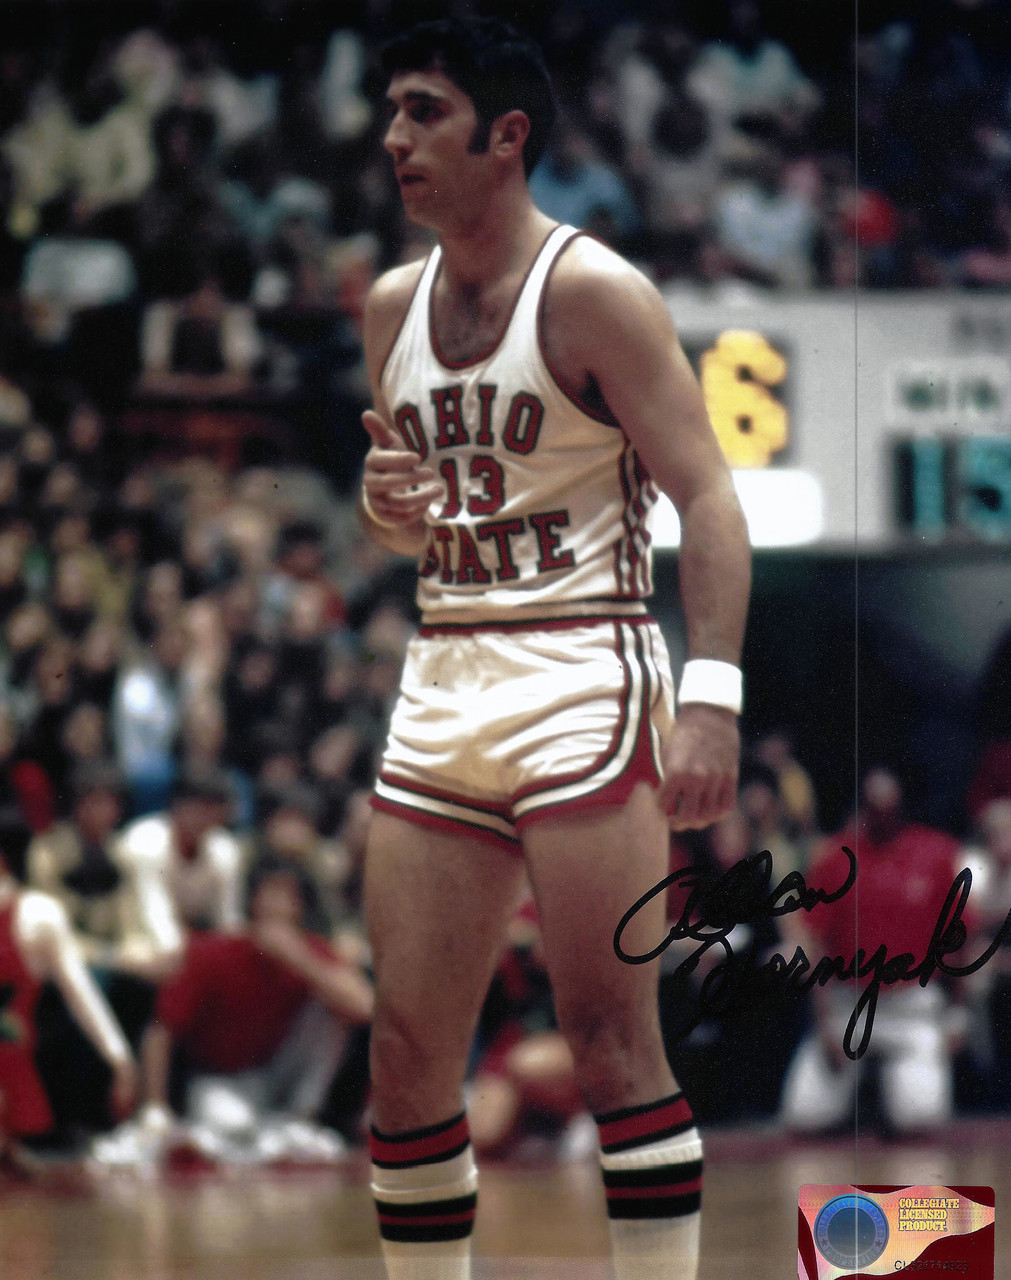 Allan Hornyak OSU 8-2 8x10 Autographed Photo - Certified Authentic